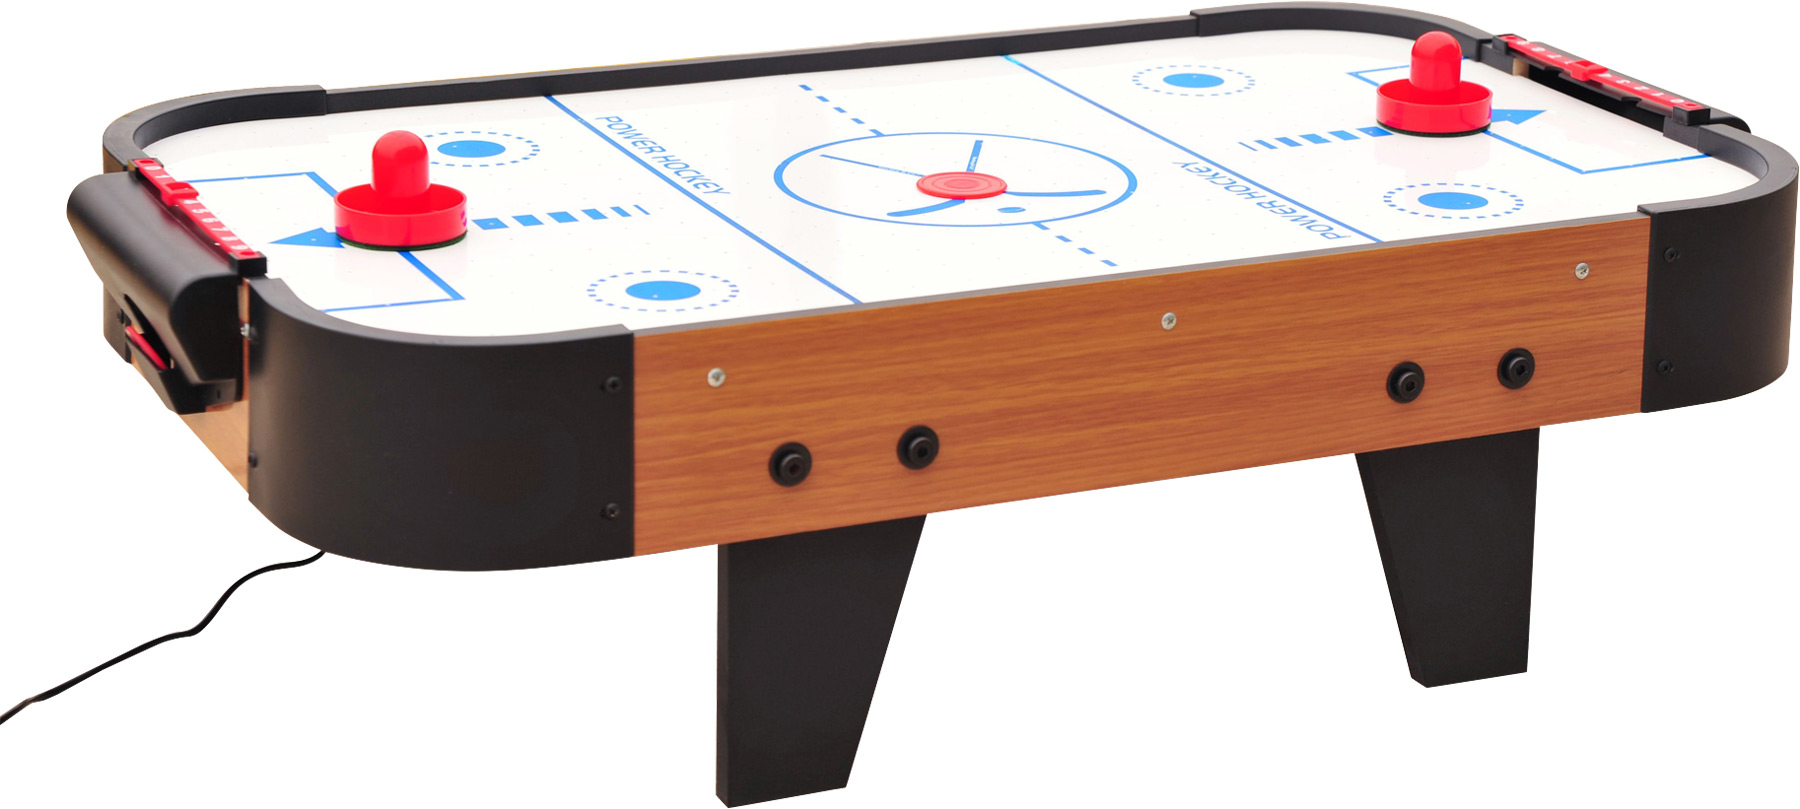 Home Air Hockey Table Top